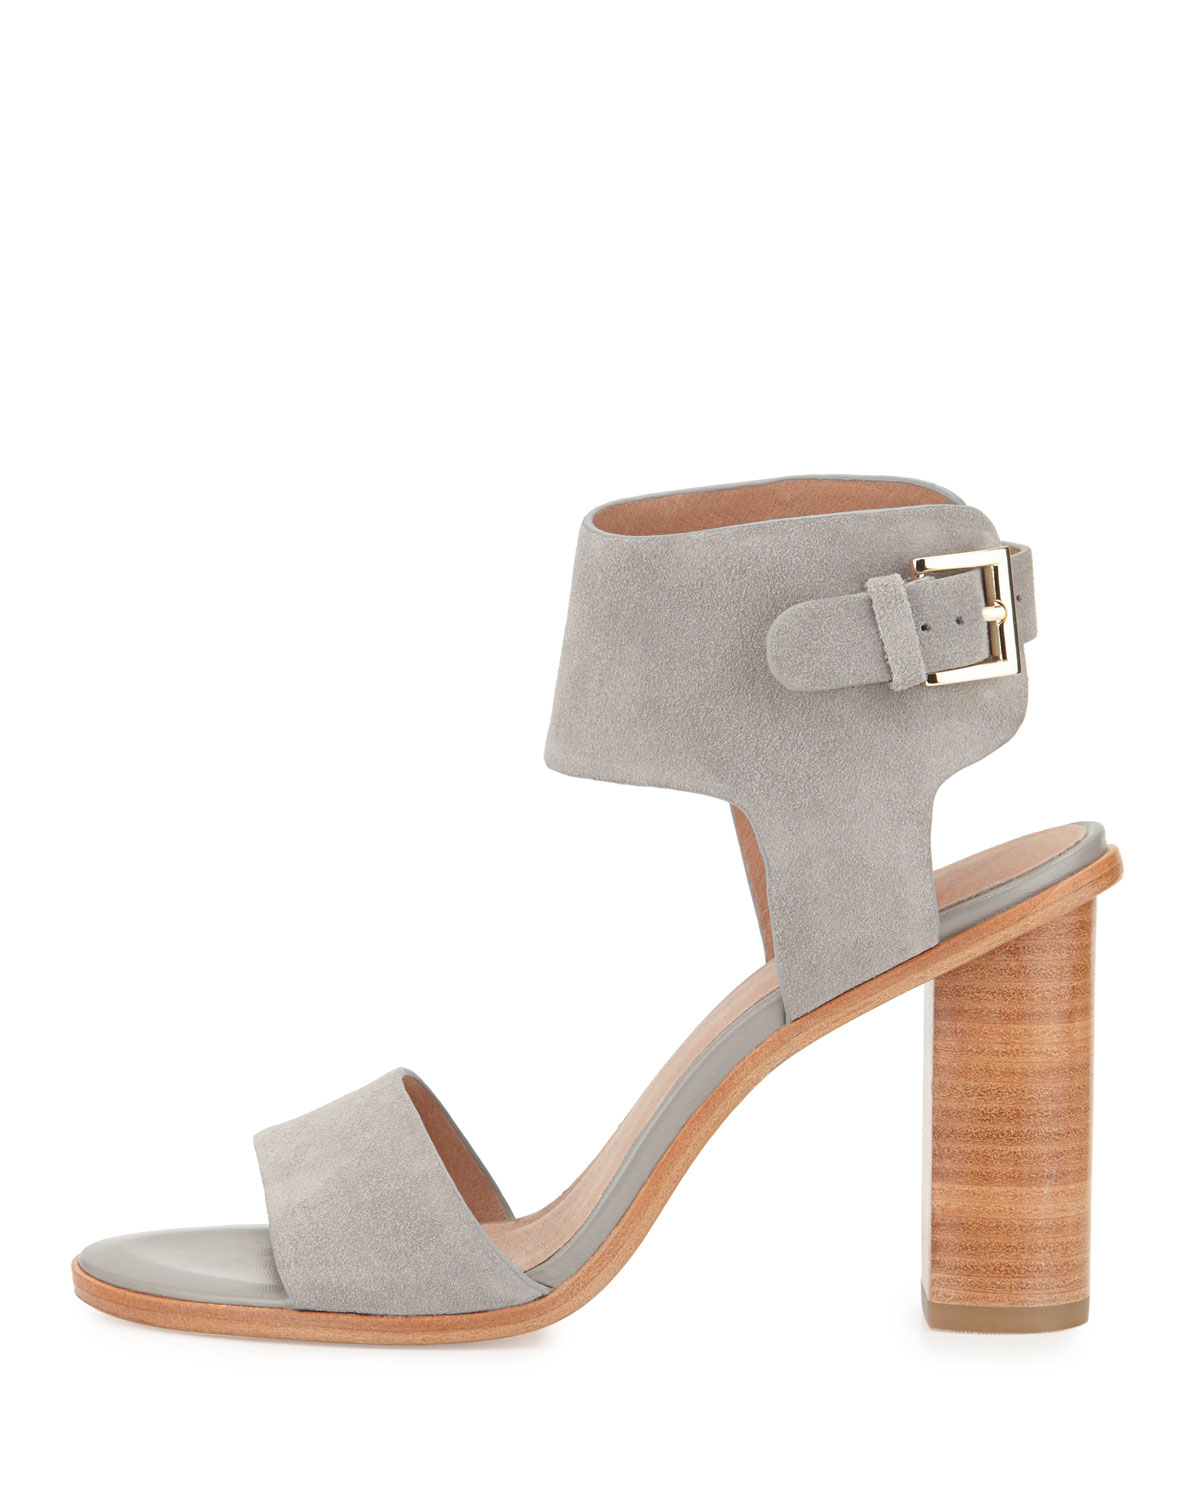 c7b624bafcd3 Lyst - Joie Opal Leather High-heel City Sandal in Gray